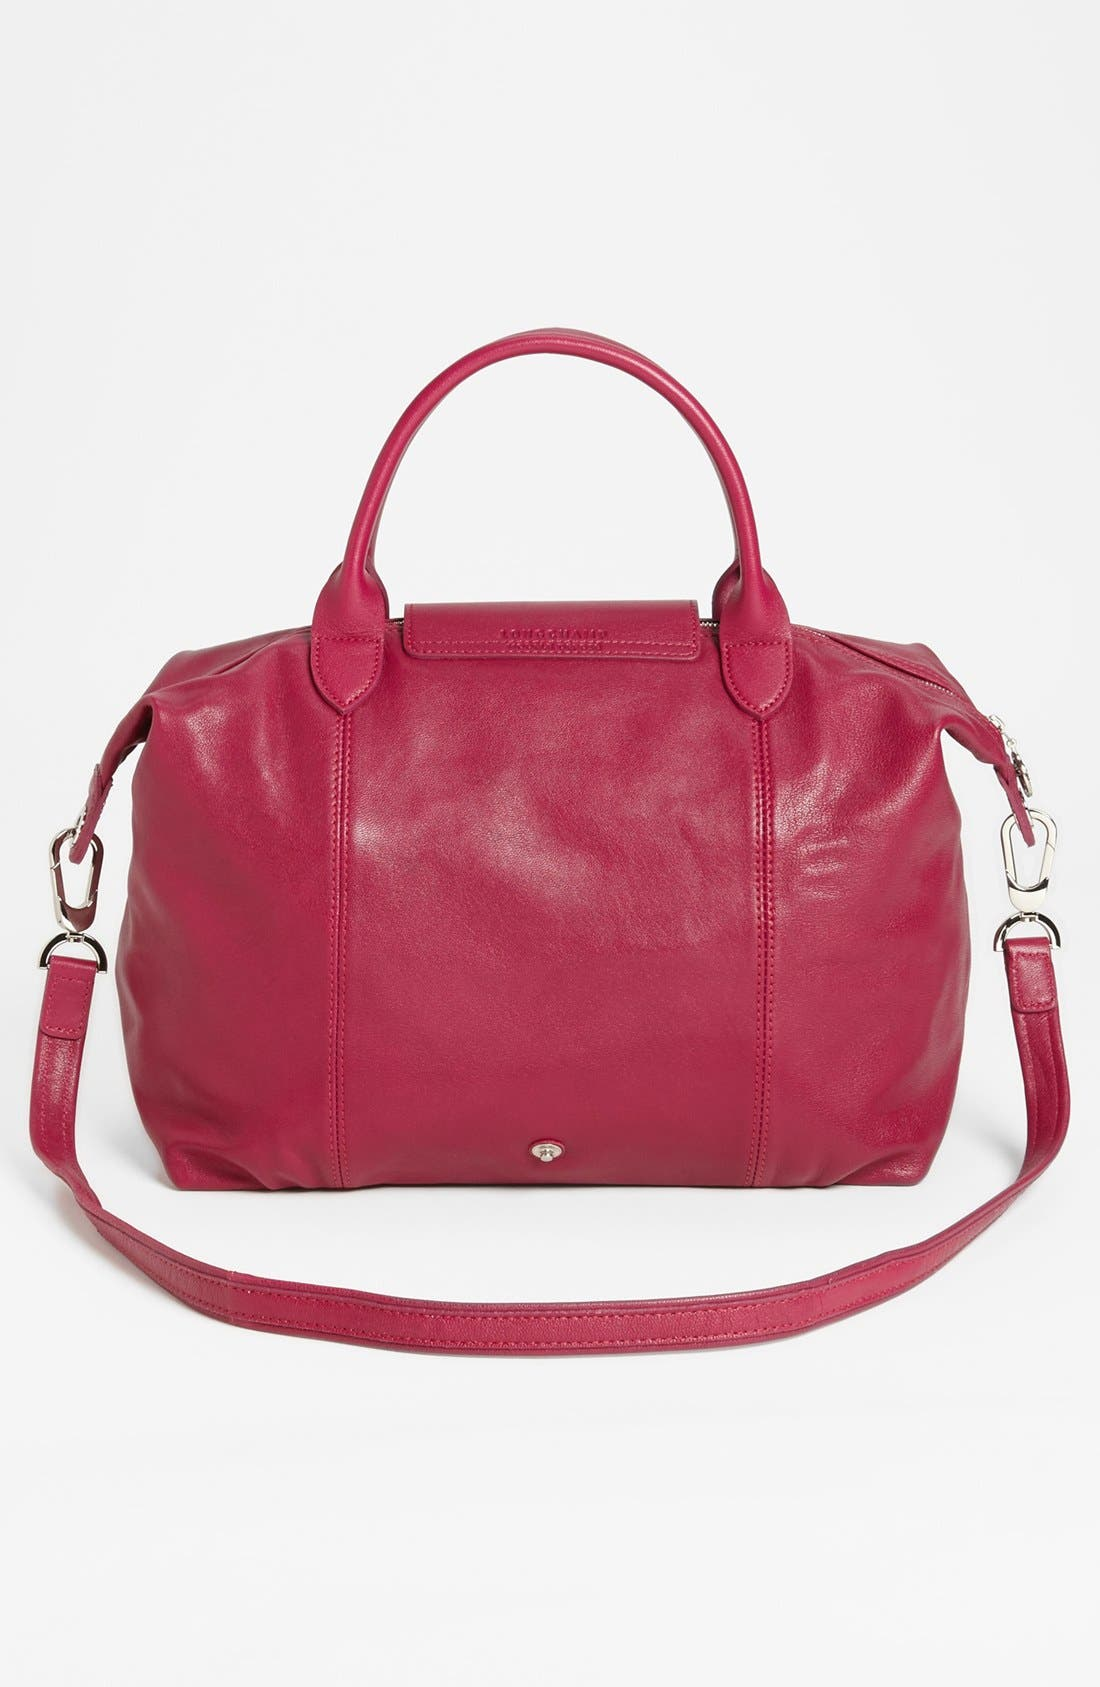 Medium 'Le Pliage Cuir' Leather Top Handle Tote,                             Alternate thumbnail 50, color,